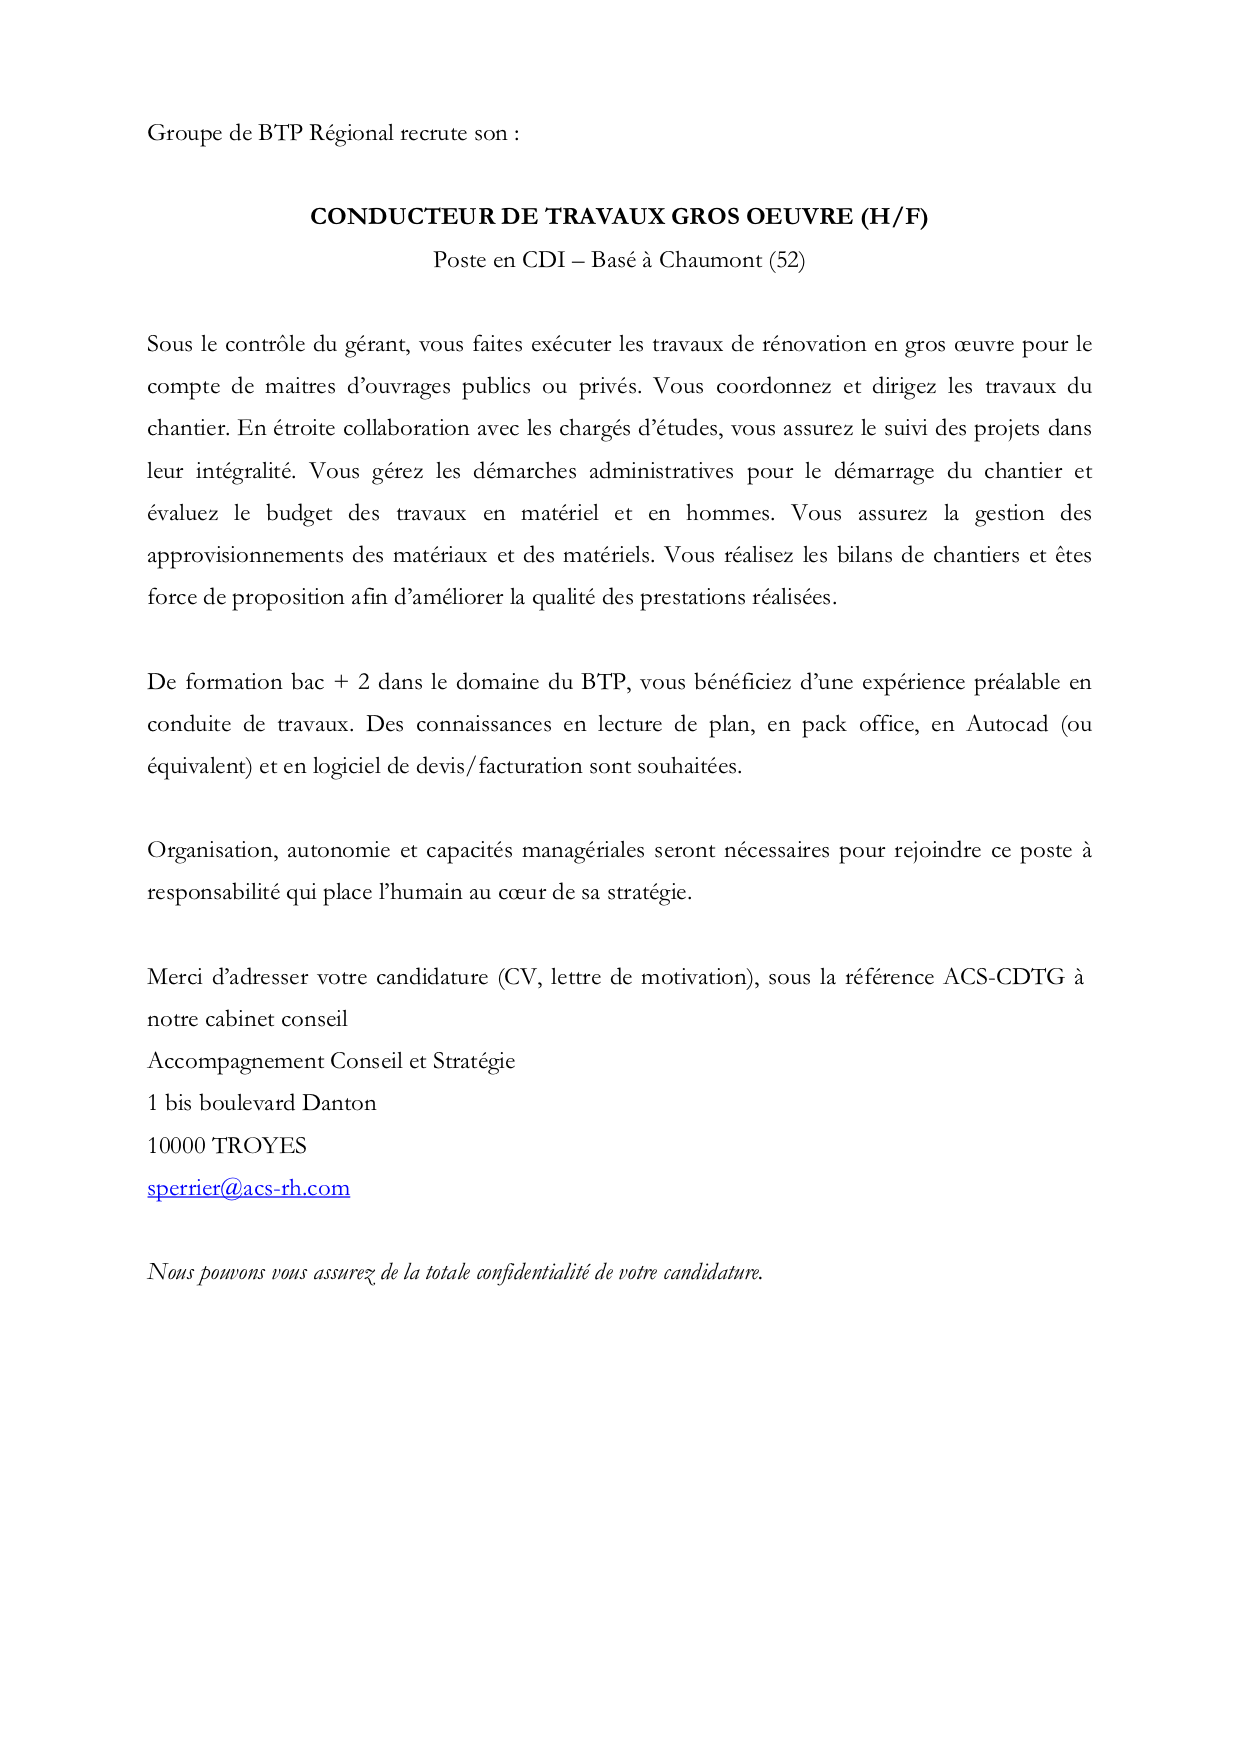 lettre de motivation conducteur dengins tp